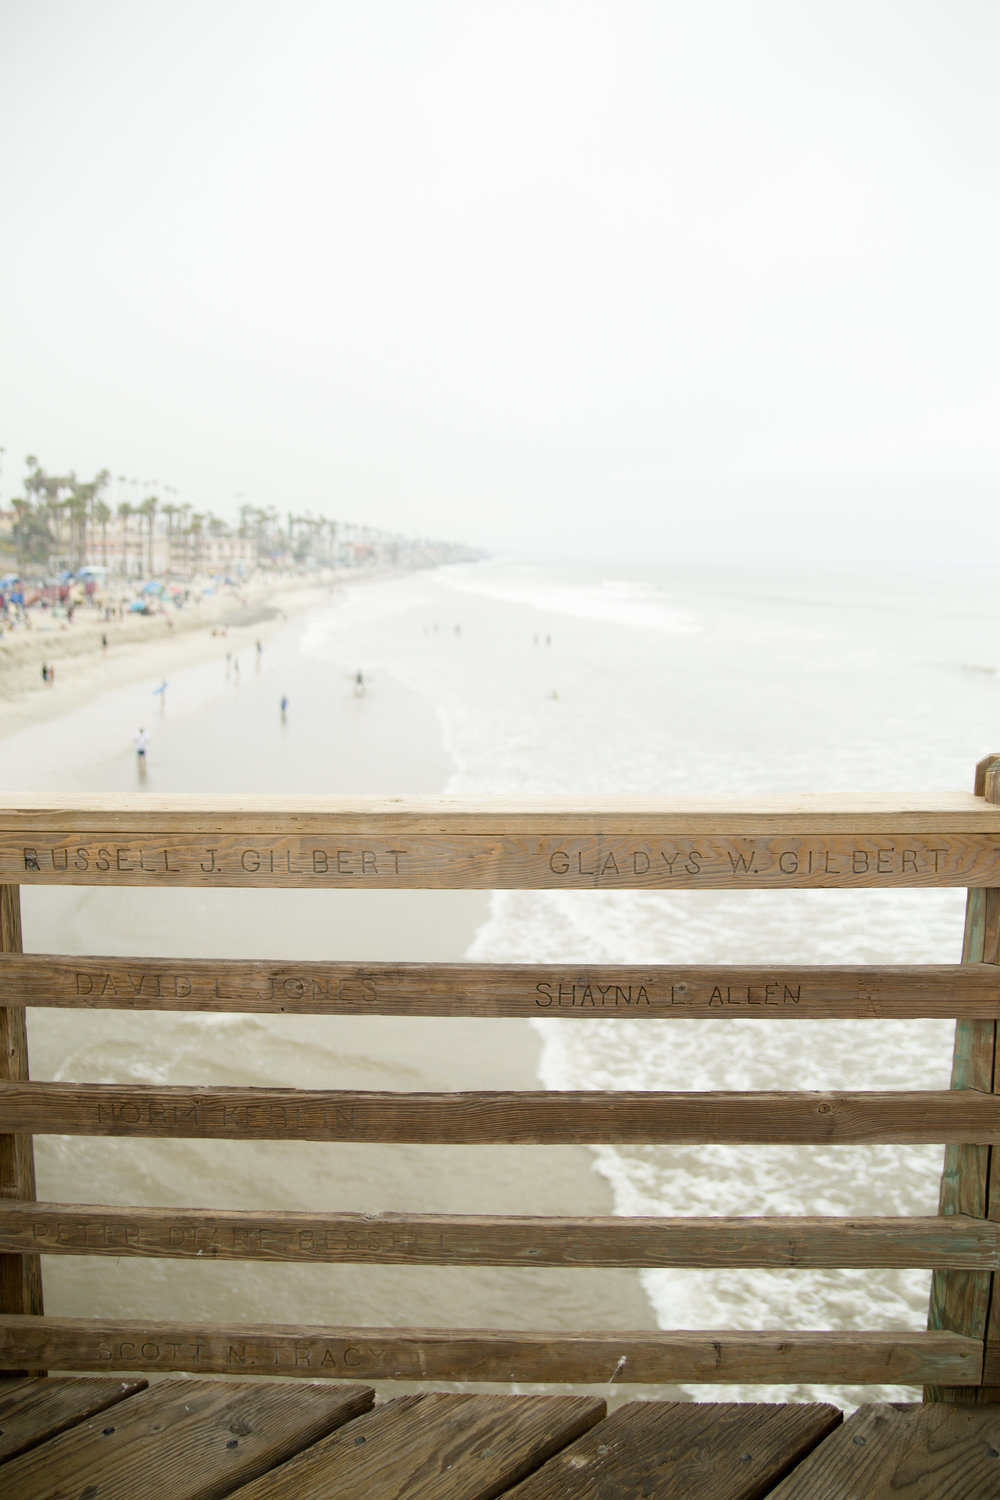 Foggy capture of the beach, taken from the pier in oceanside California